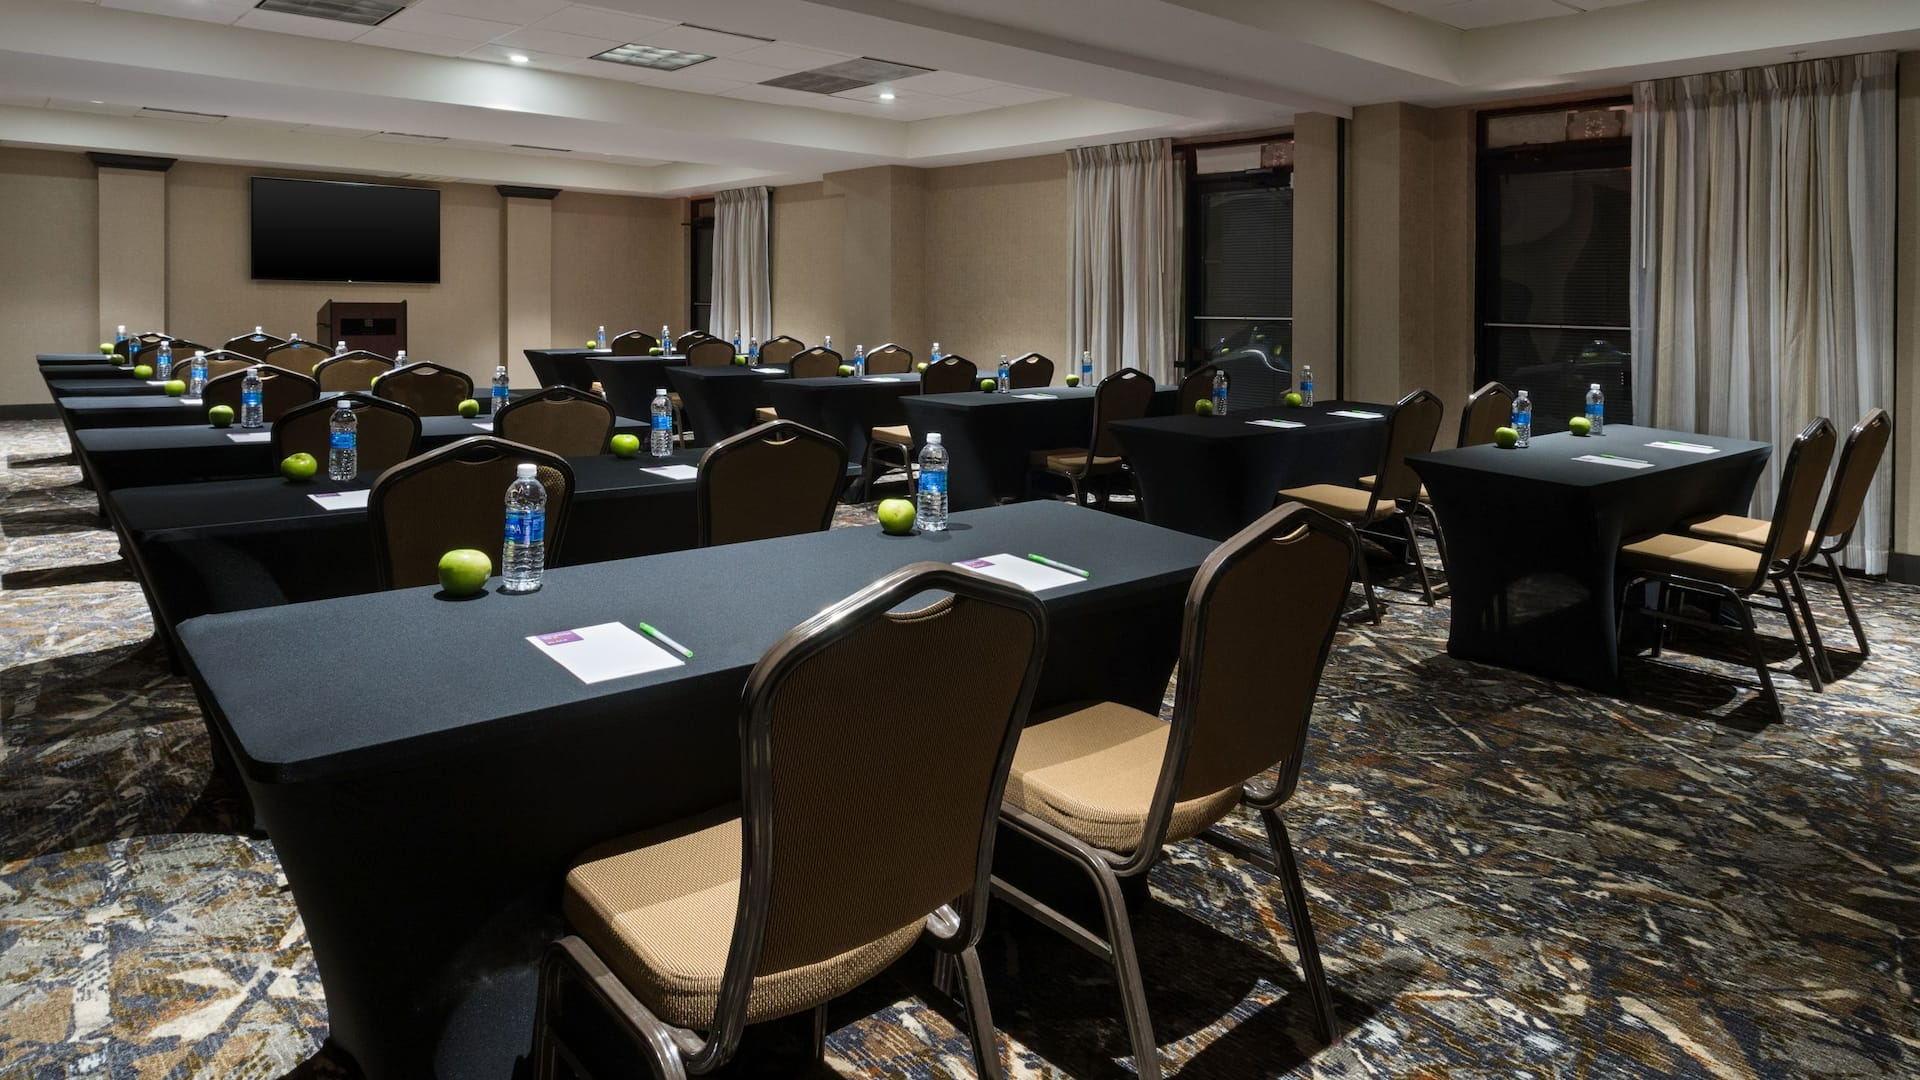 Hyatt Place Fort Lauderdale 17th St Convention Center Meeting Classroom